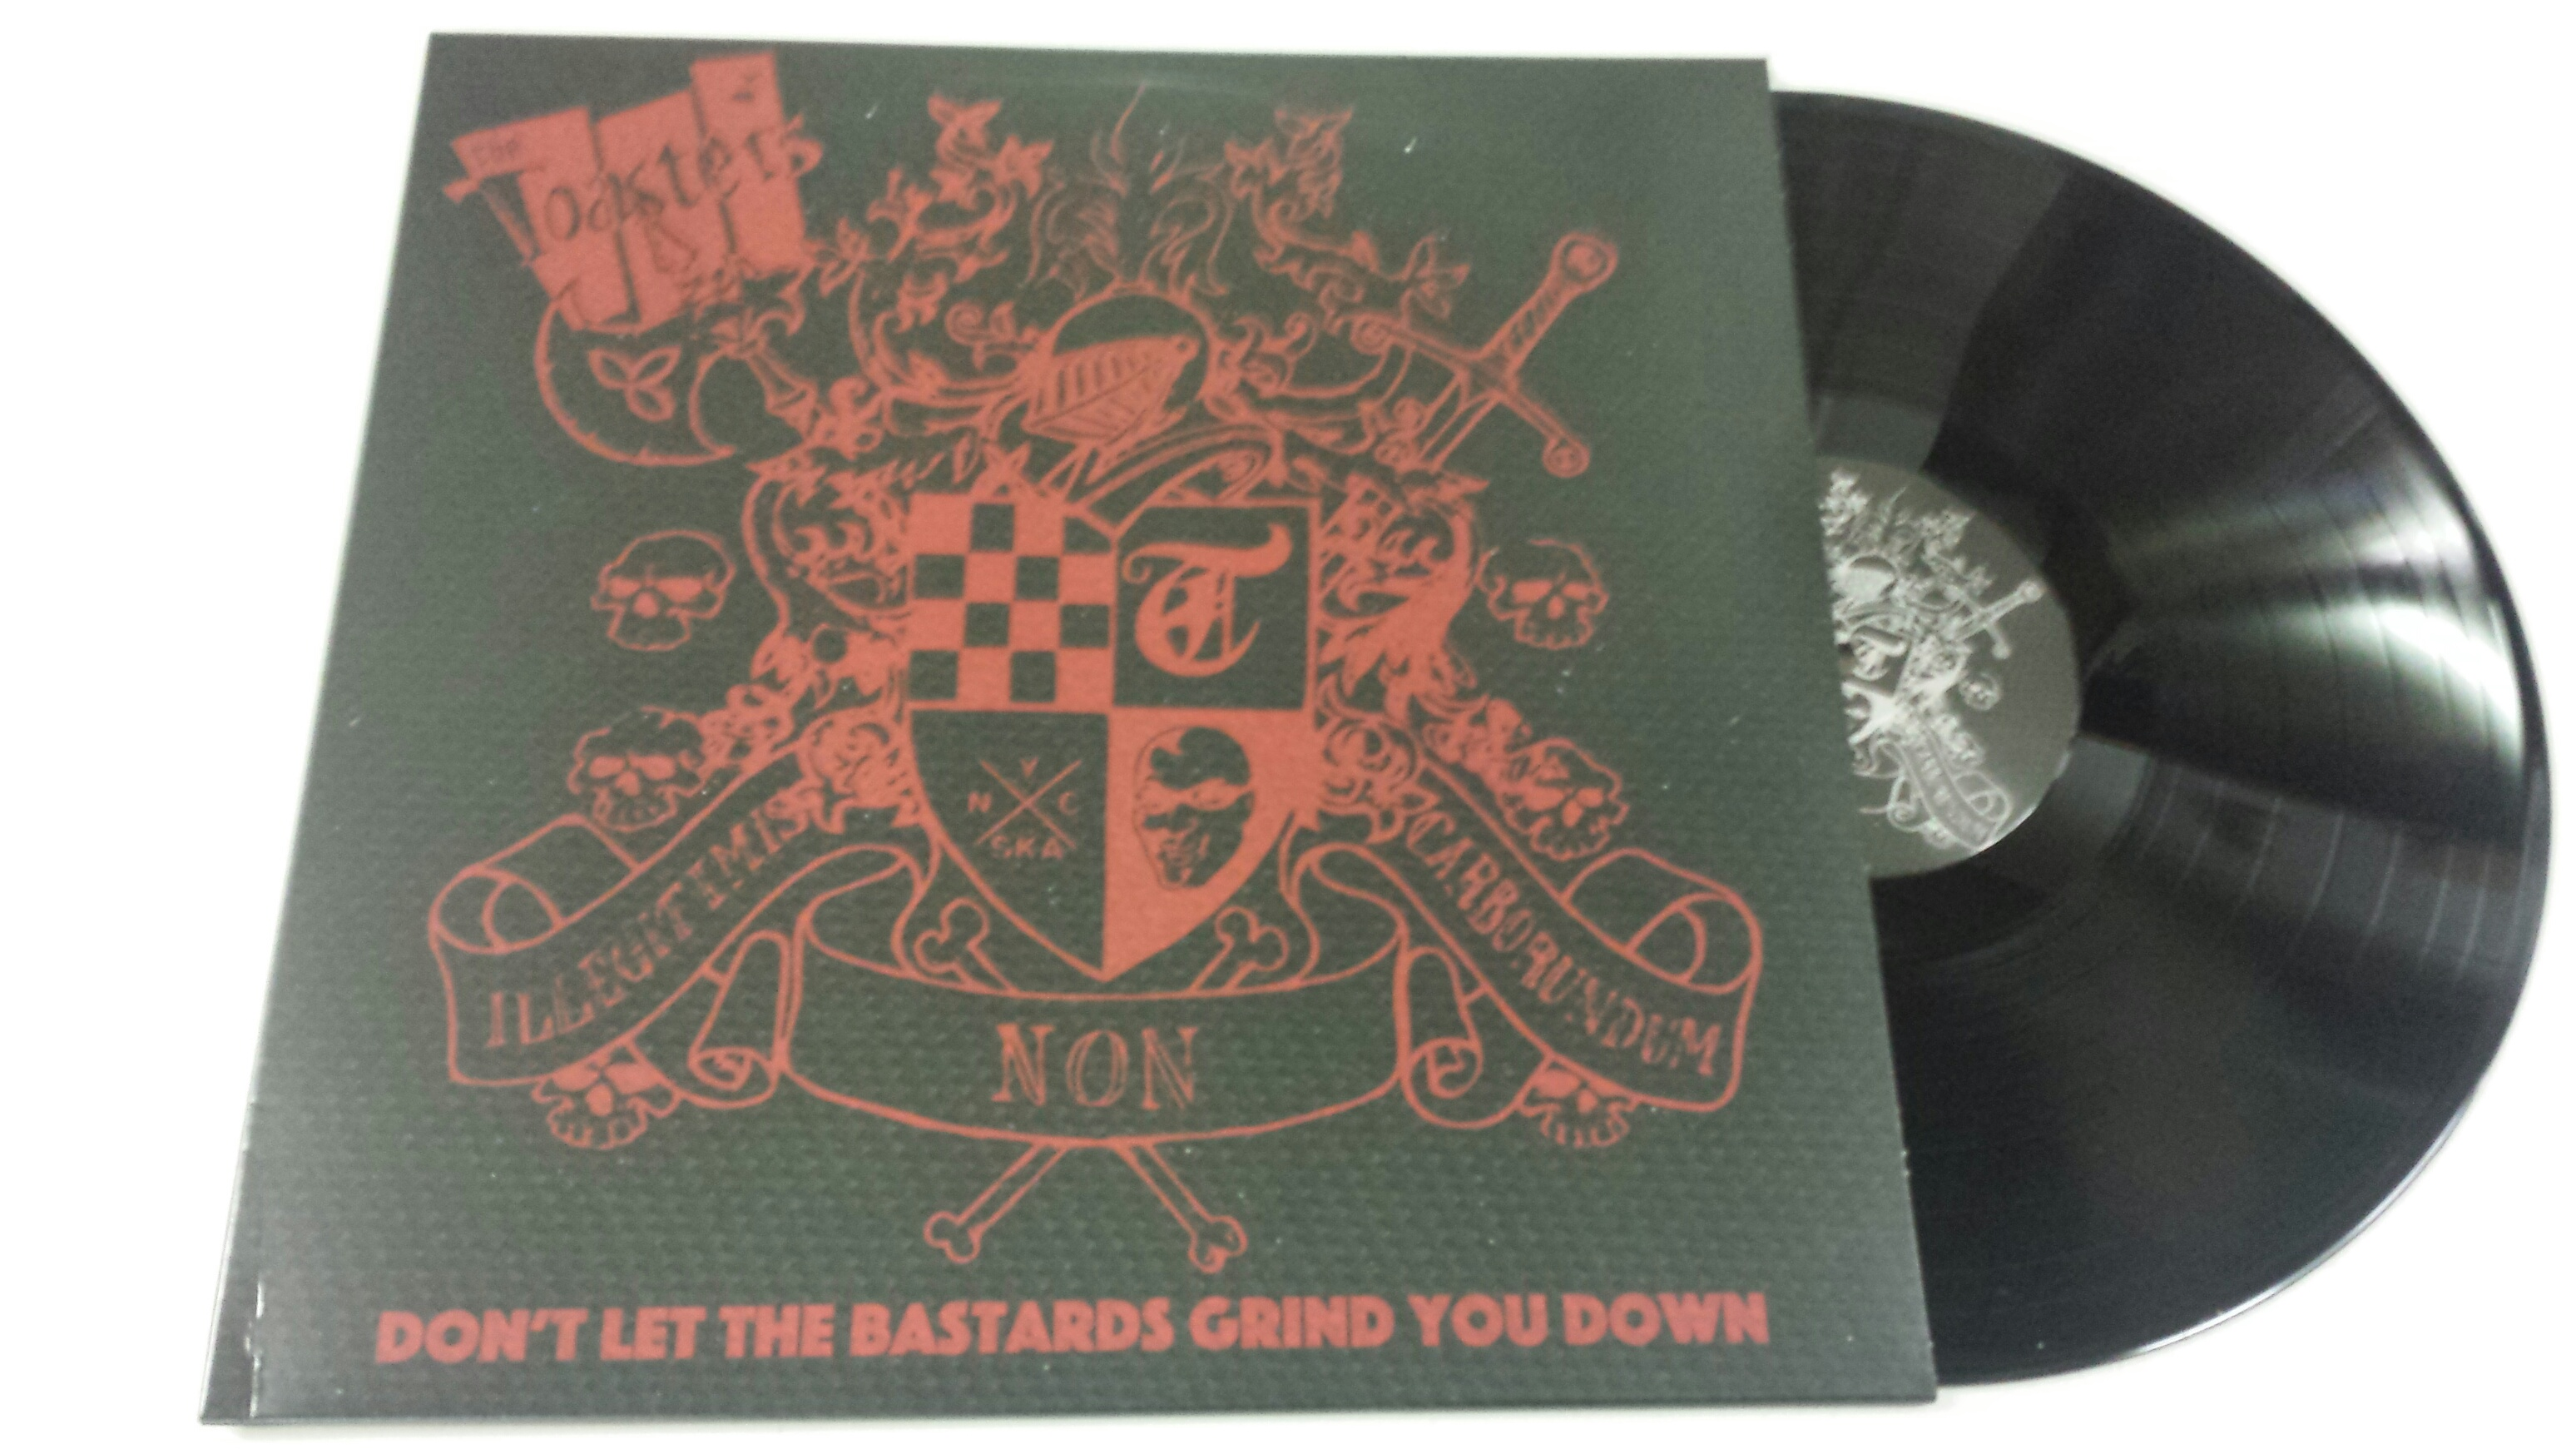 Toasters/DON'T LET THE BASTARDS GRIND LP